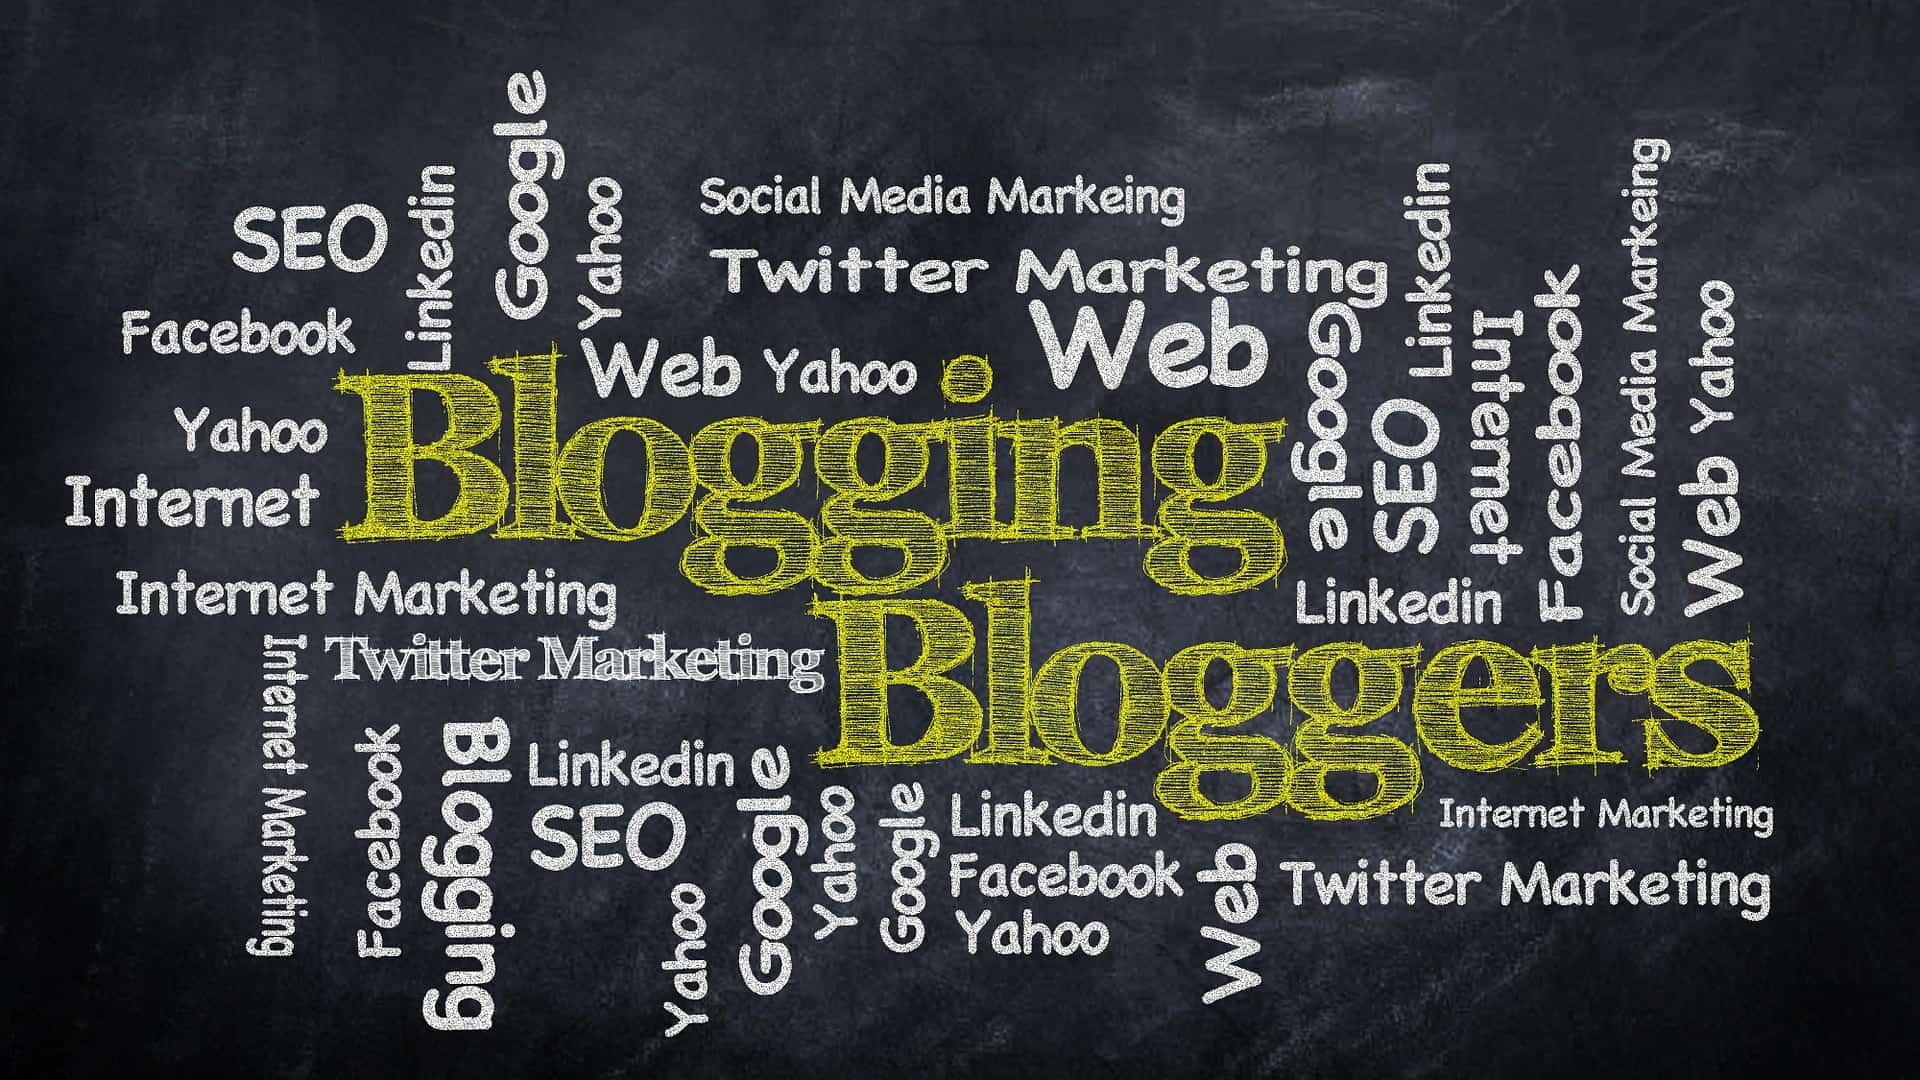 Top 3 Blogging Trends That Will Dominate 2016